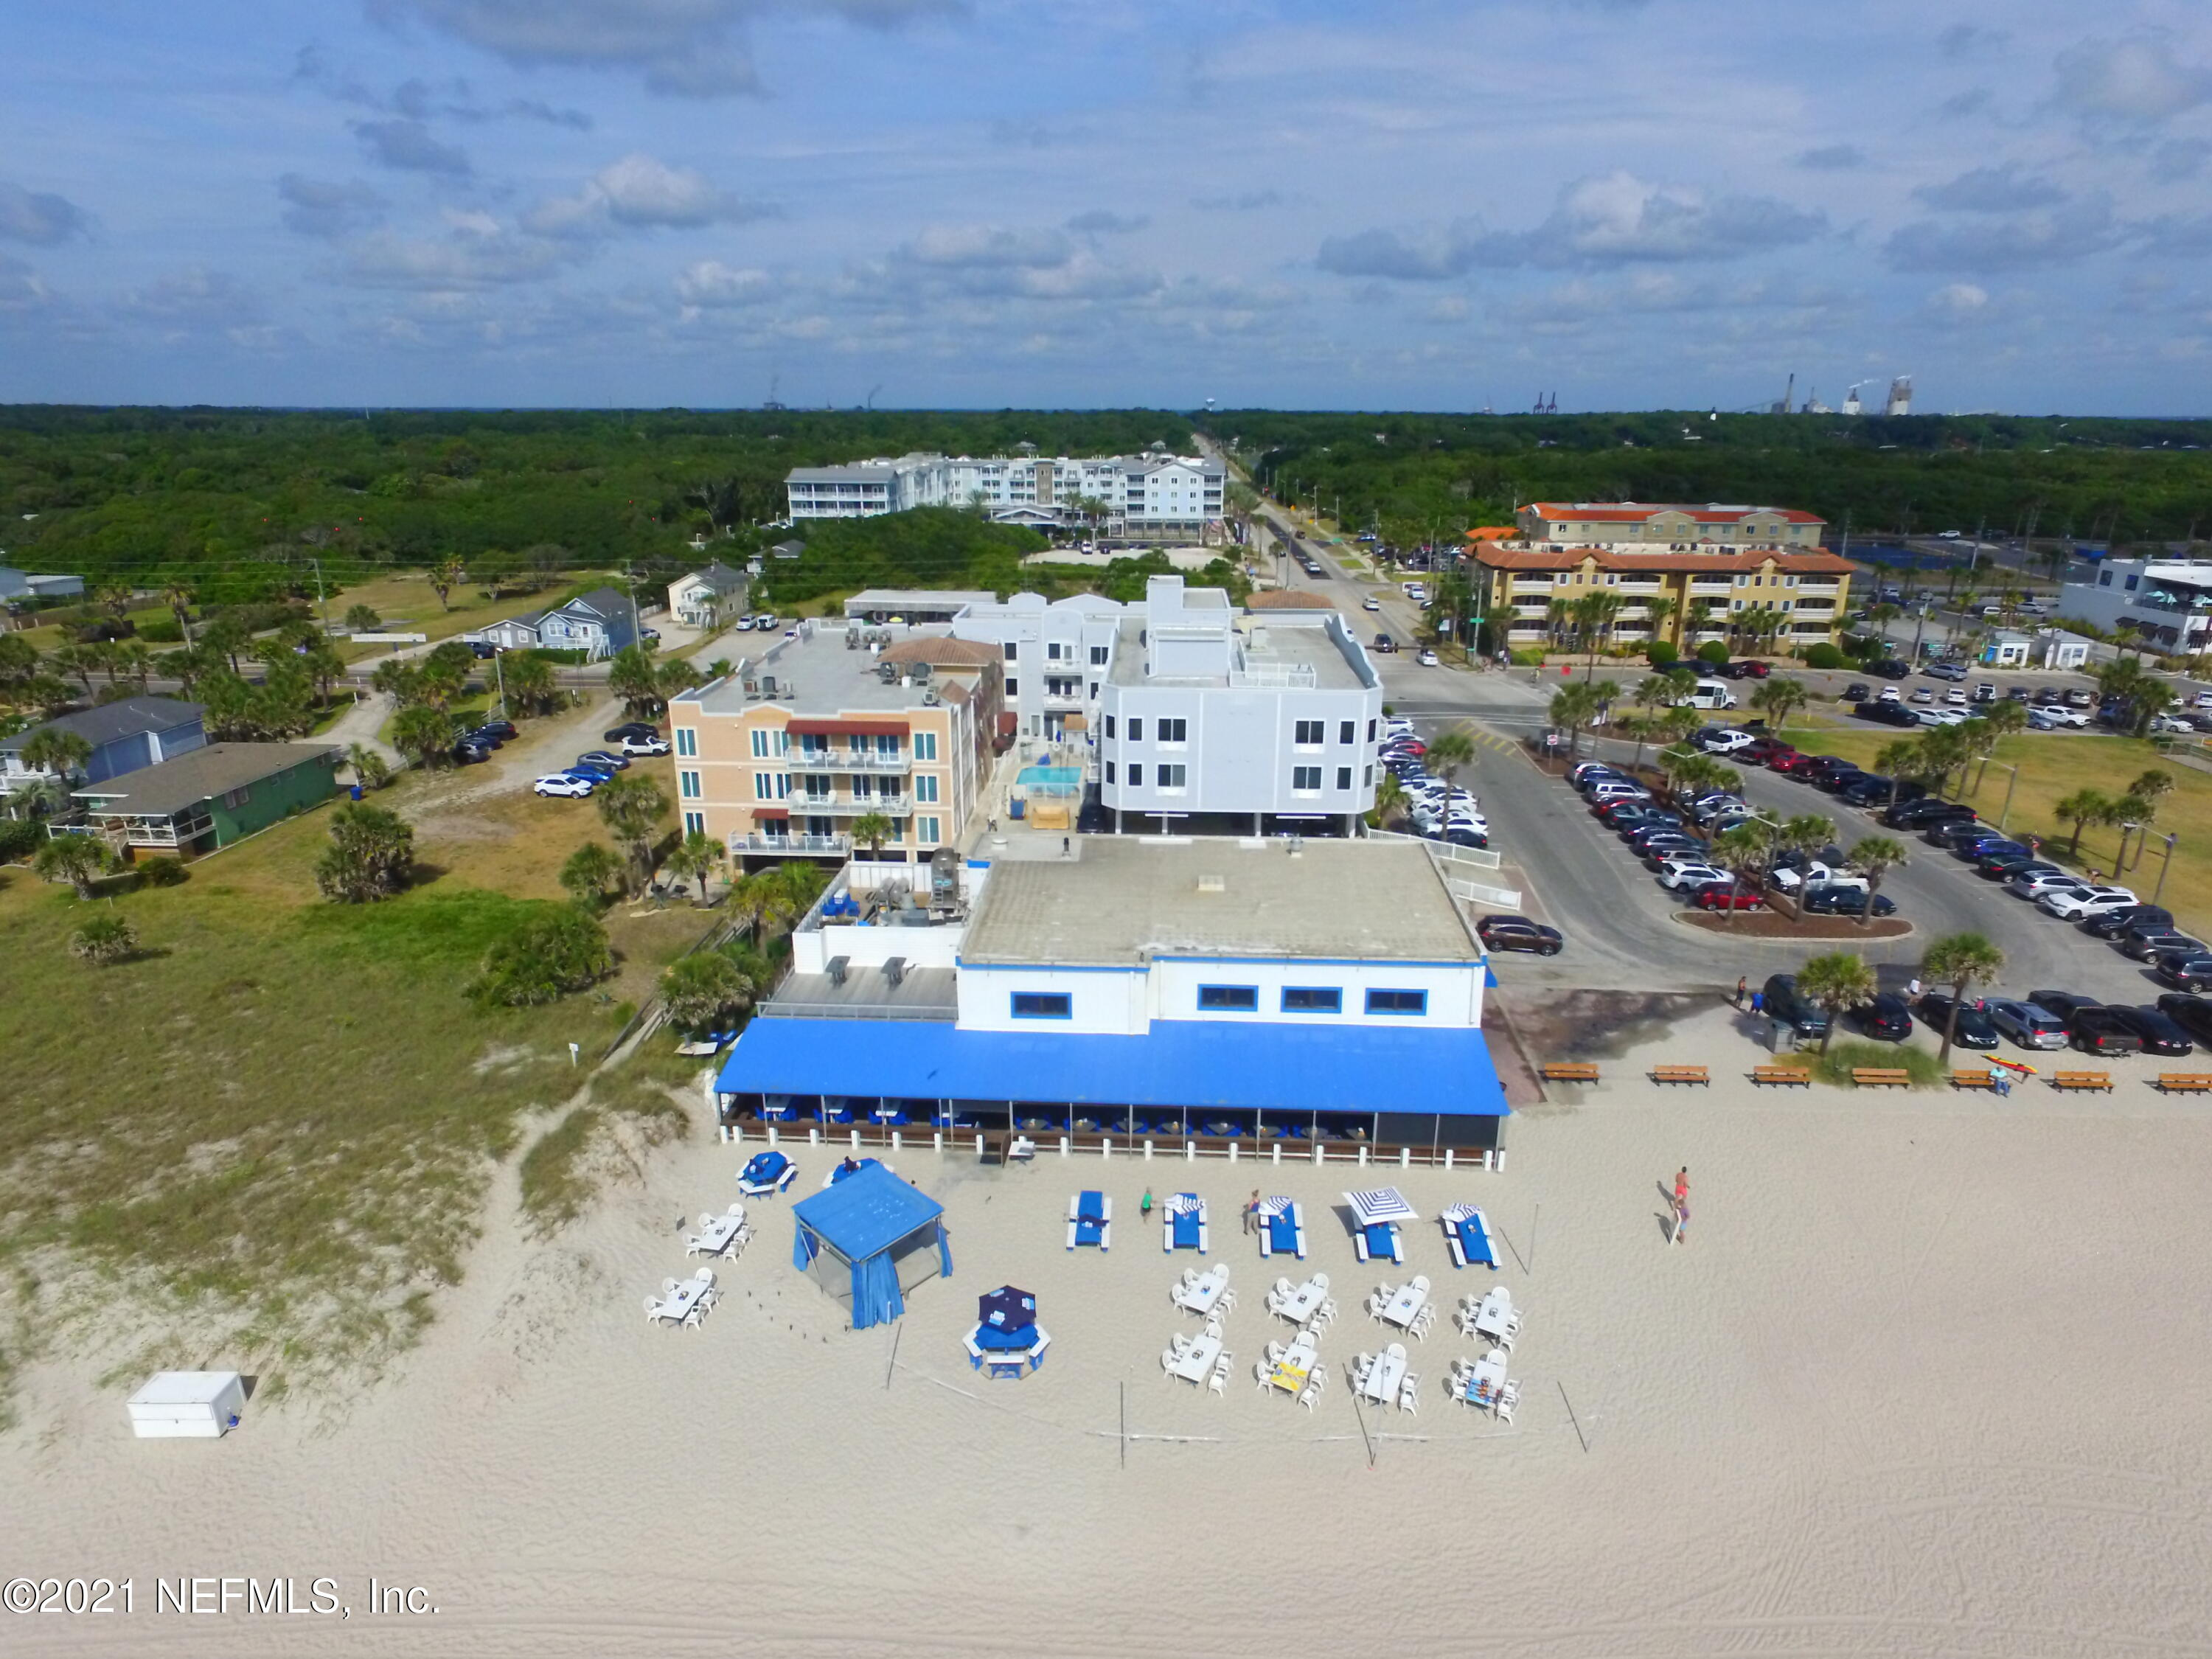 Fantastic opportunity to purchase a turn-key oceanfront restaurant property and business on the highly desirable Amelia Island! The Sandbar & Kitchen has a loyal following and continues to deliver on a great atmosphere, great service, and really great food. Sandbar offers indoor, patio (130 seats), and sand-in your toes outdoor seating (140 seats). The Sandbar accommodates parties of 100+ upstairs with its own upstairs bar. Also, the open floor plan allows for access to both upstairs and downstairs customers to live music on stage several times a week. Outside bar and beachside entertainment are great for weekend dining enjoyment. Adding immeasurable business value is the opening of the new Marriott Courtyard just steps away on Atlantic.